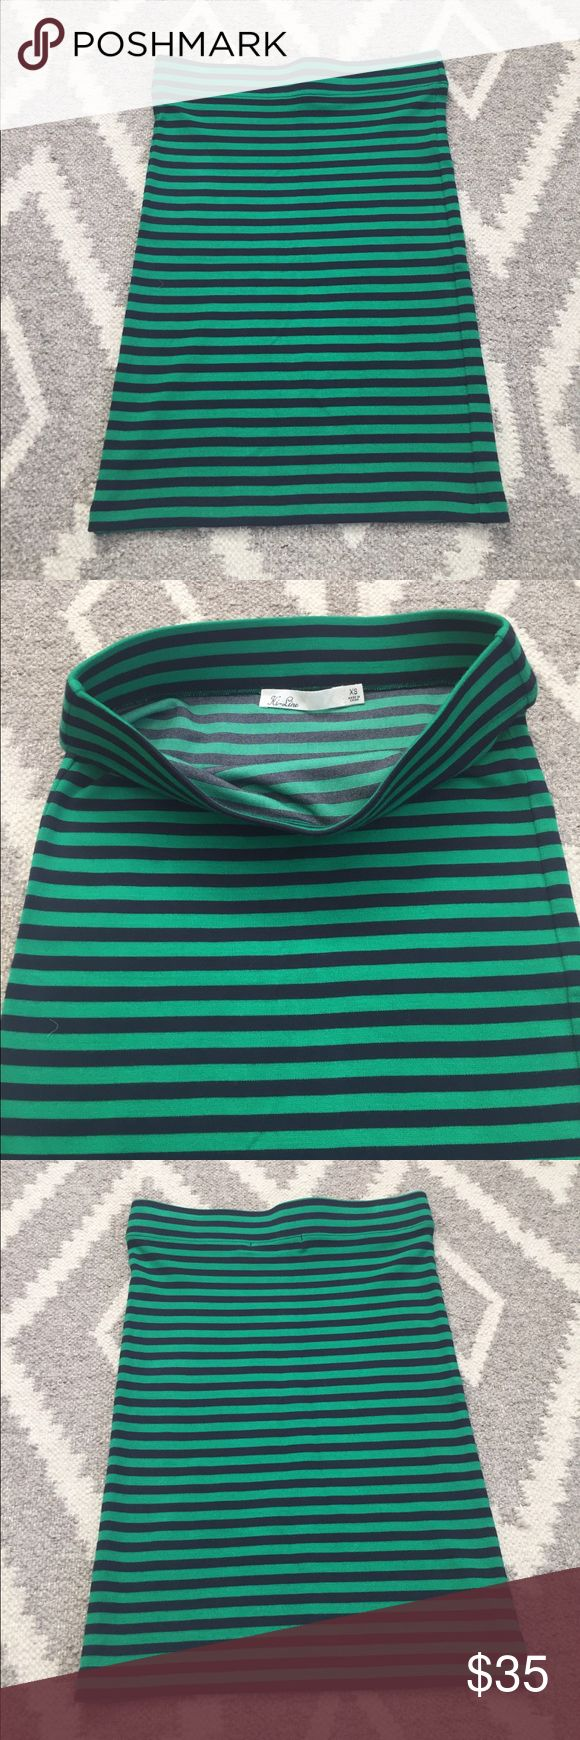 Madewell Striped Skirt Green and navy striped pull-on skirt perfect for spring layers and easing into warm temperatures! Worn only twice - in great condition! Madewell Skirts Mini